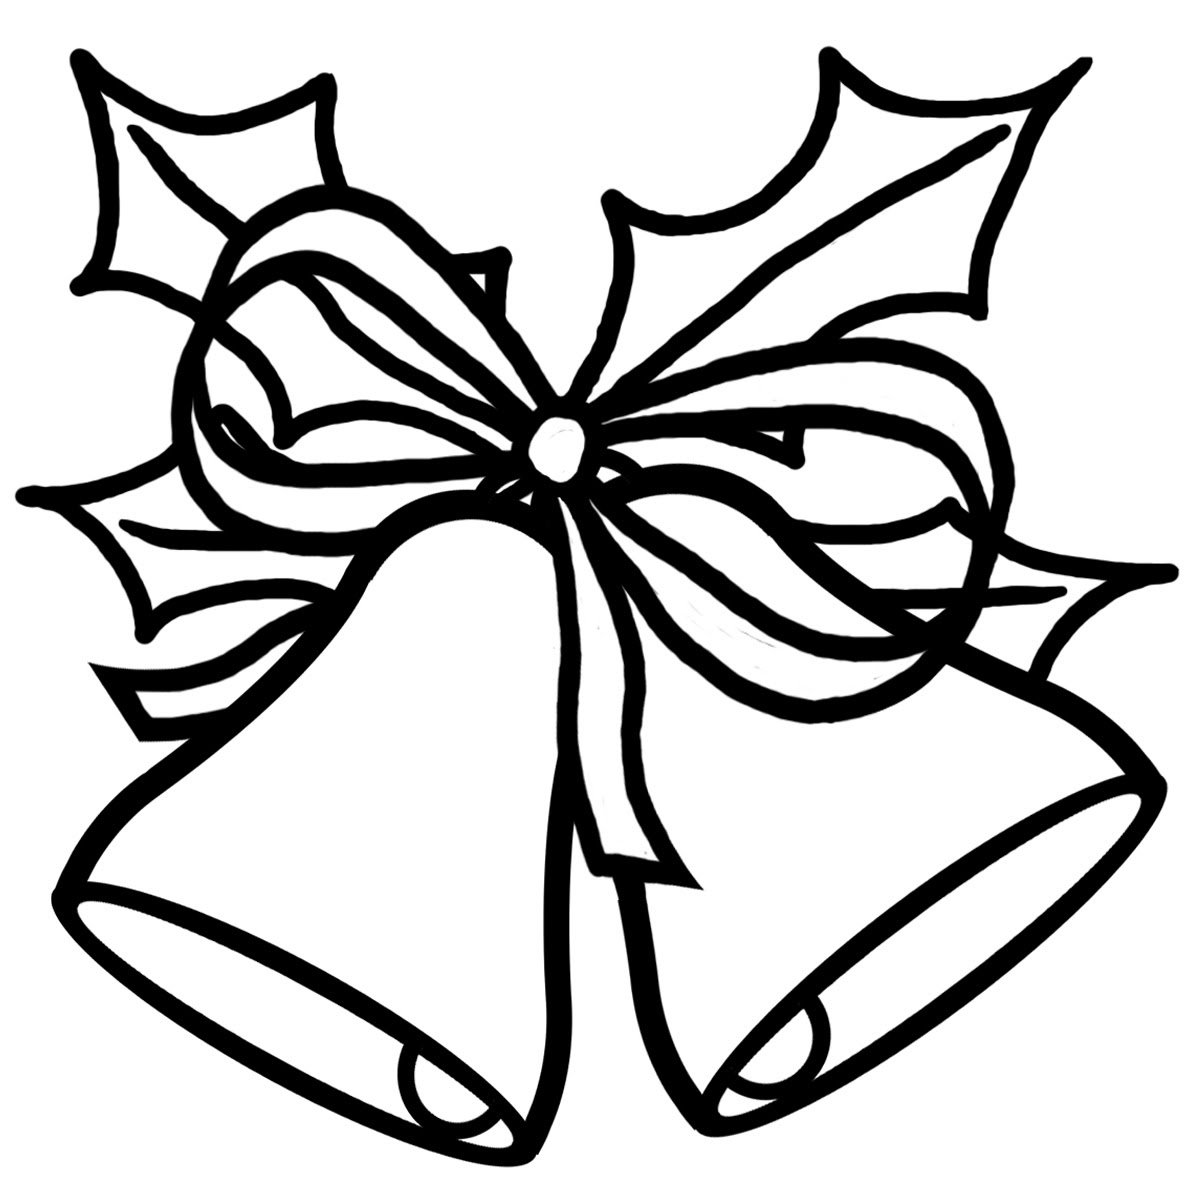 Free Christmas Clip Art Black And White Download Free Clip Art